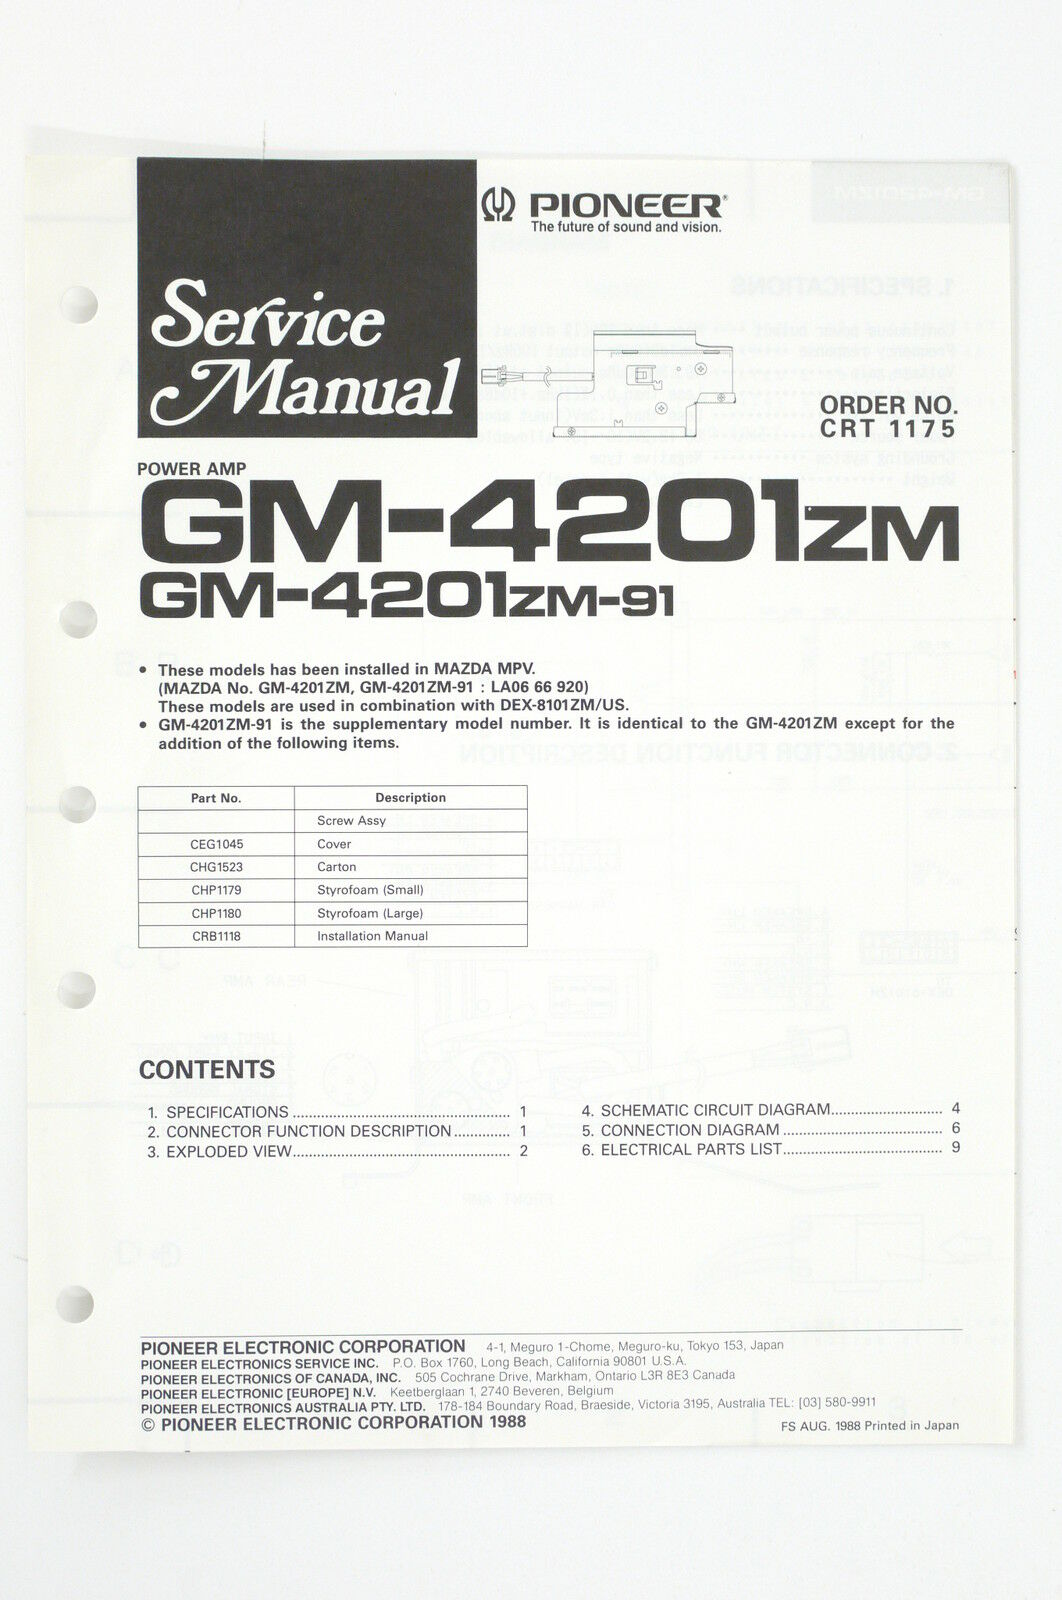 Pioneer gm-4201zm/4201zm-91 Power Amp Service Manual/WIRING DIAGRAM/ 1 of  1Only 1 available See More